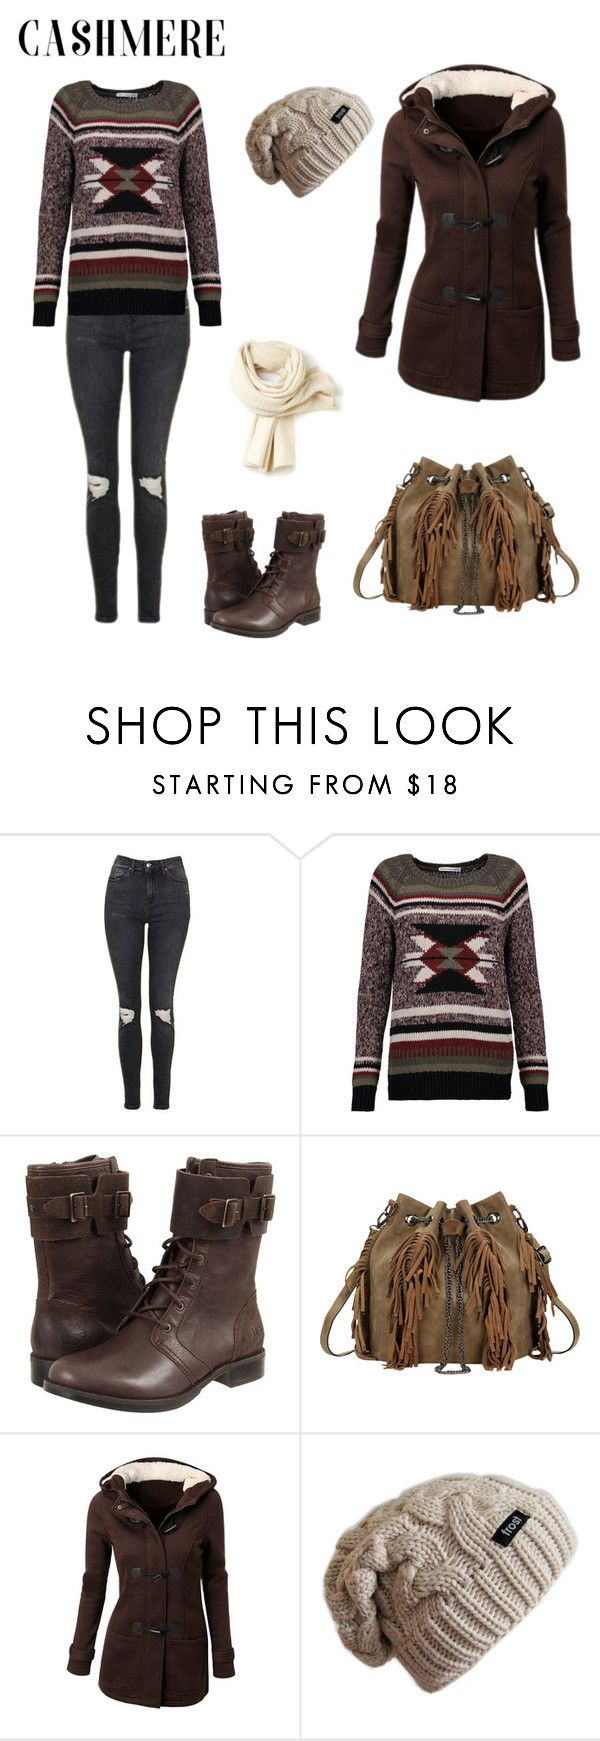 """""""Cashmere"""" by stargirl234 ❤ liked on Polyvore featuring Topshop, Autumn Cashmere, UGG Australia, Lacoste and cashmere"""